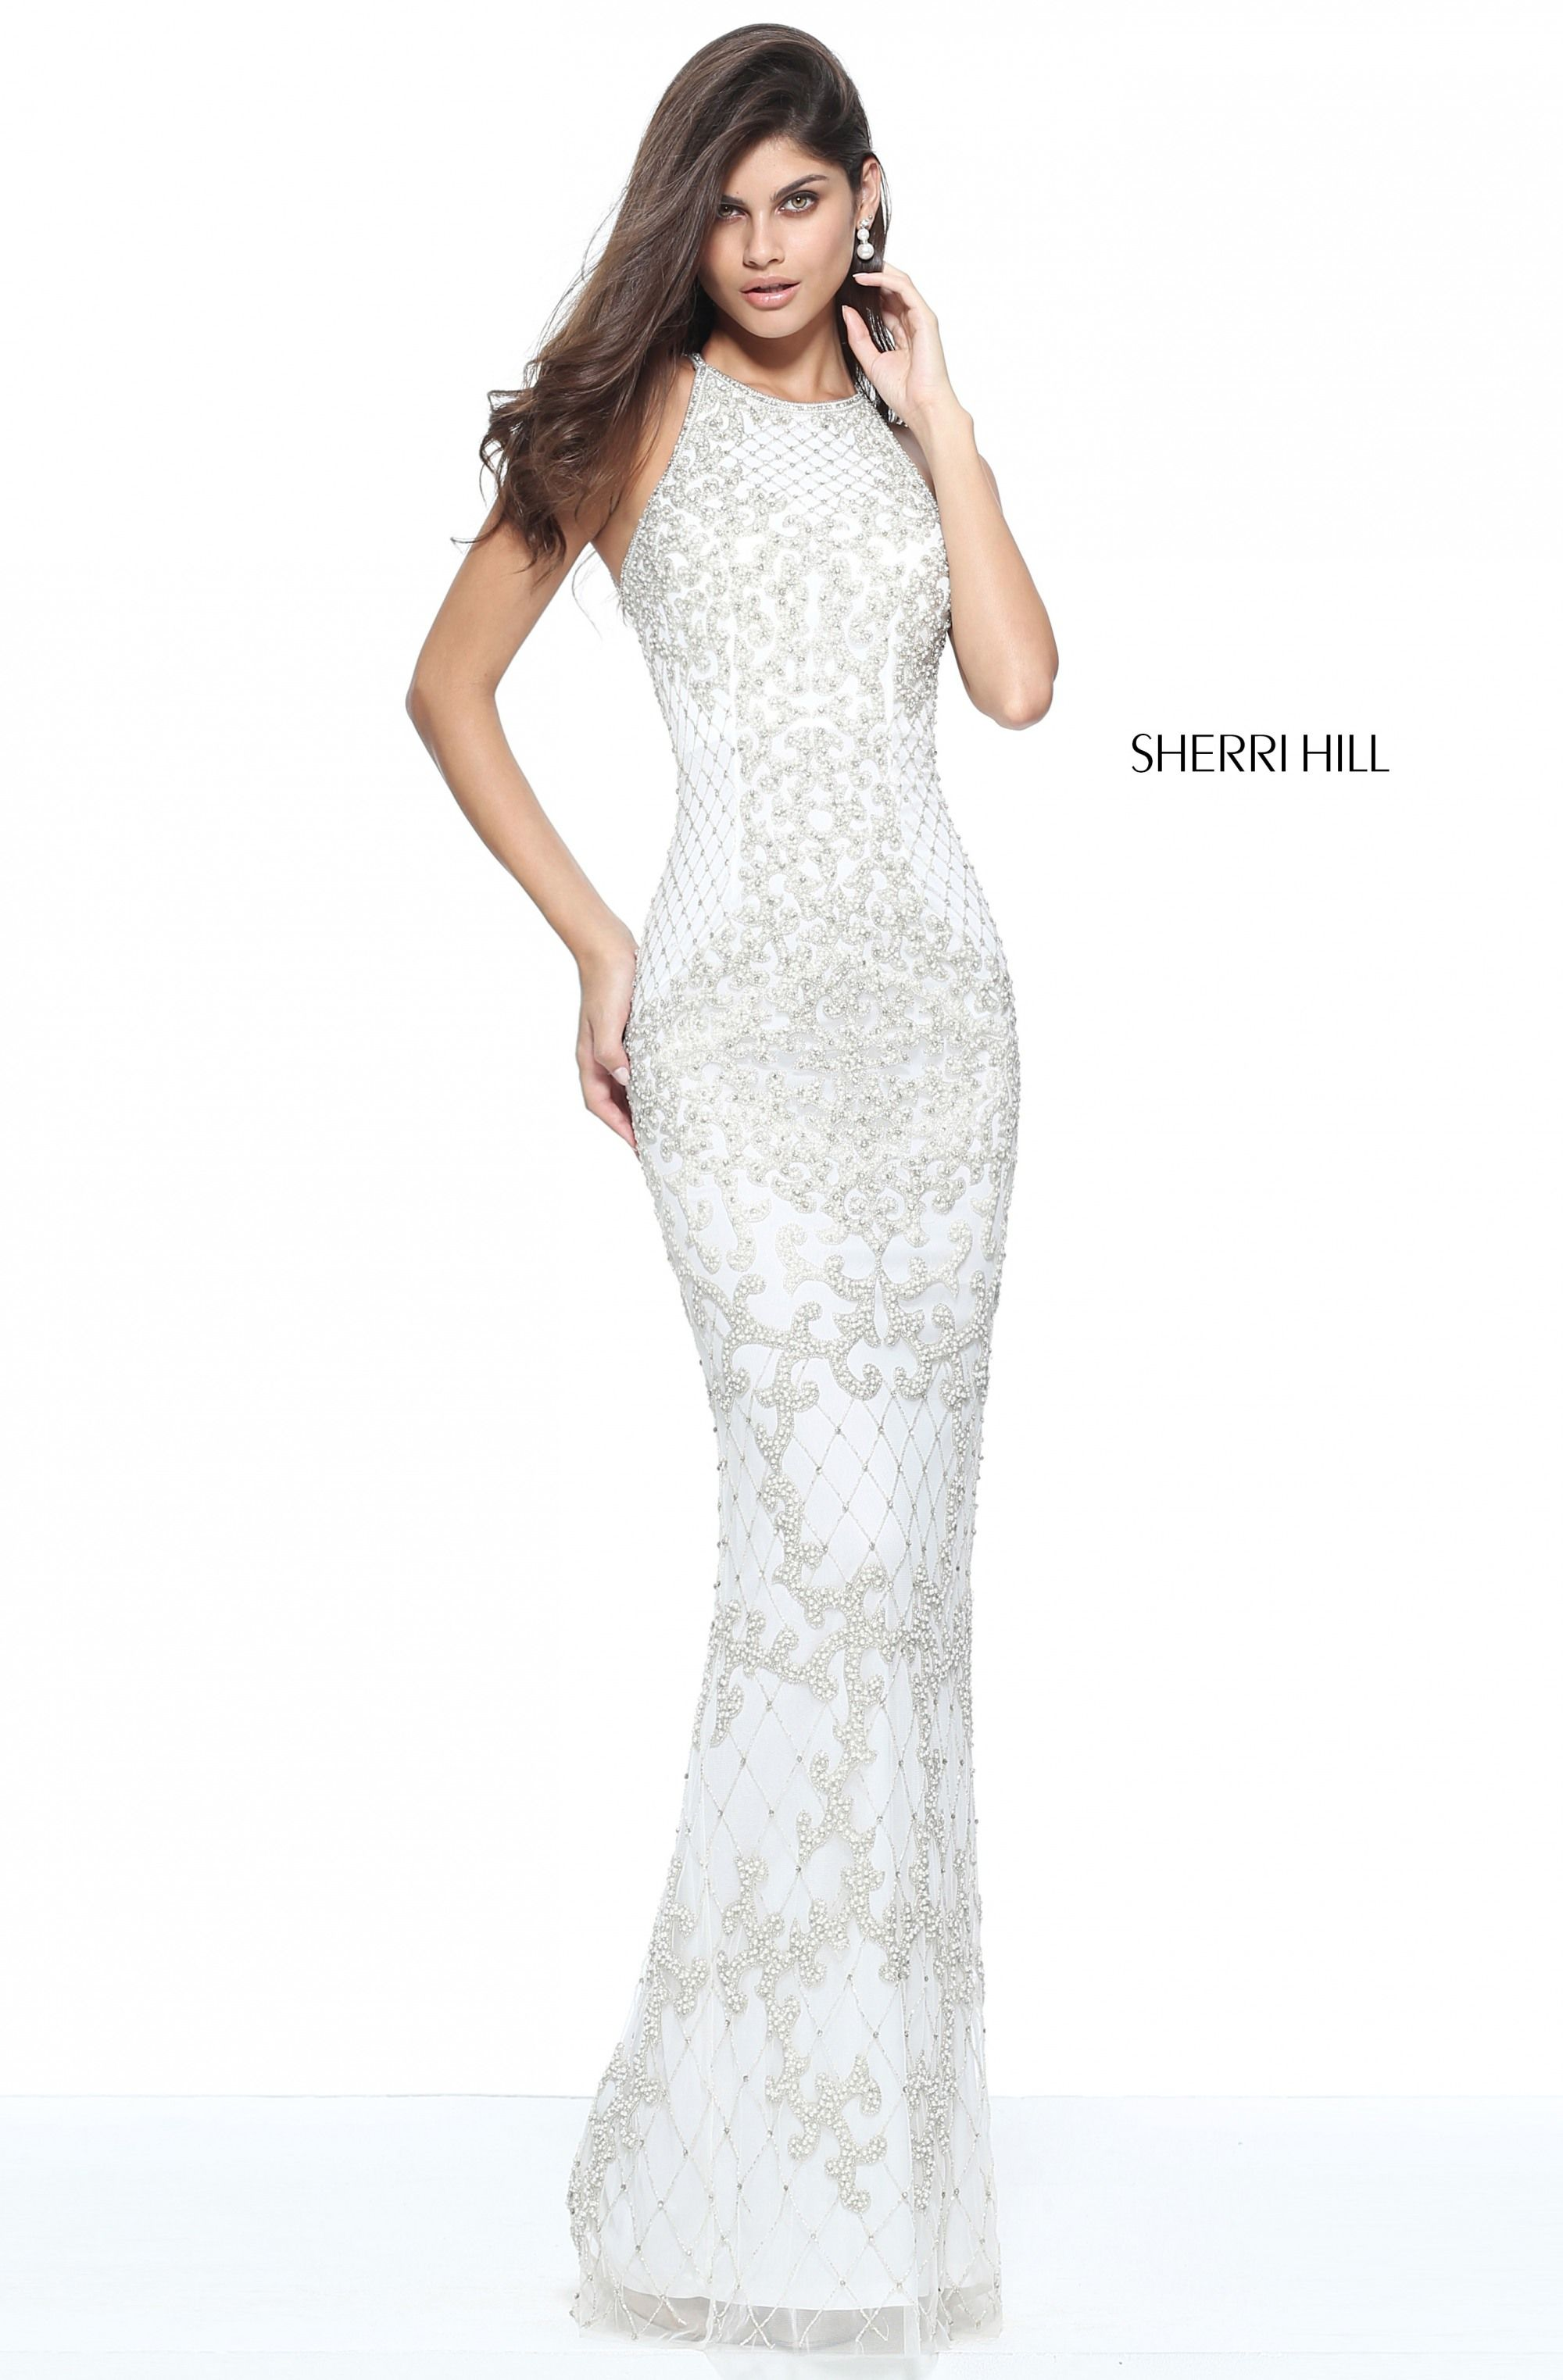 Sherri hill ivory white fitted ypsilon dresses pageant bride